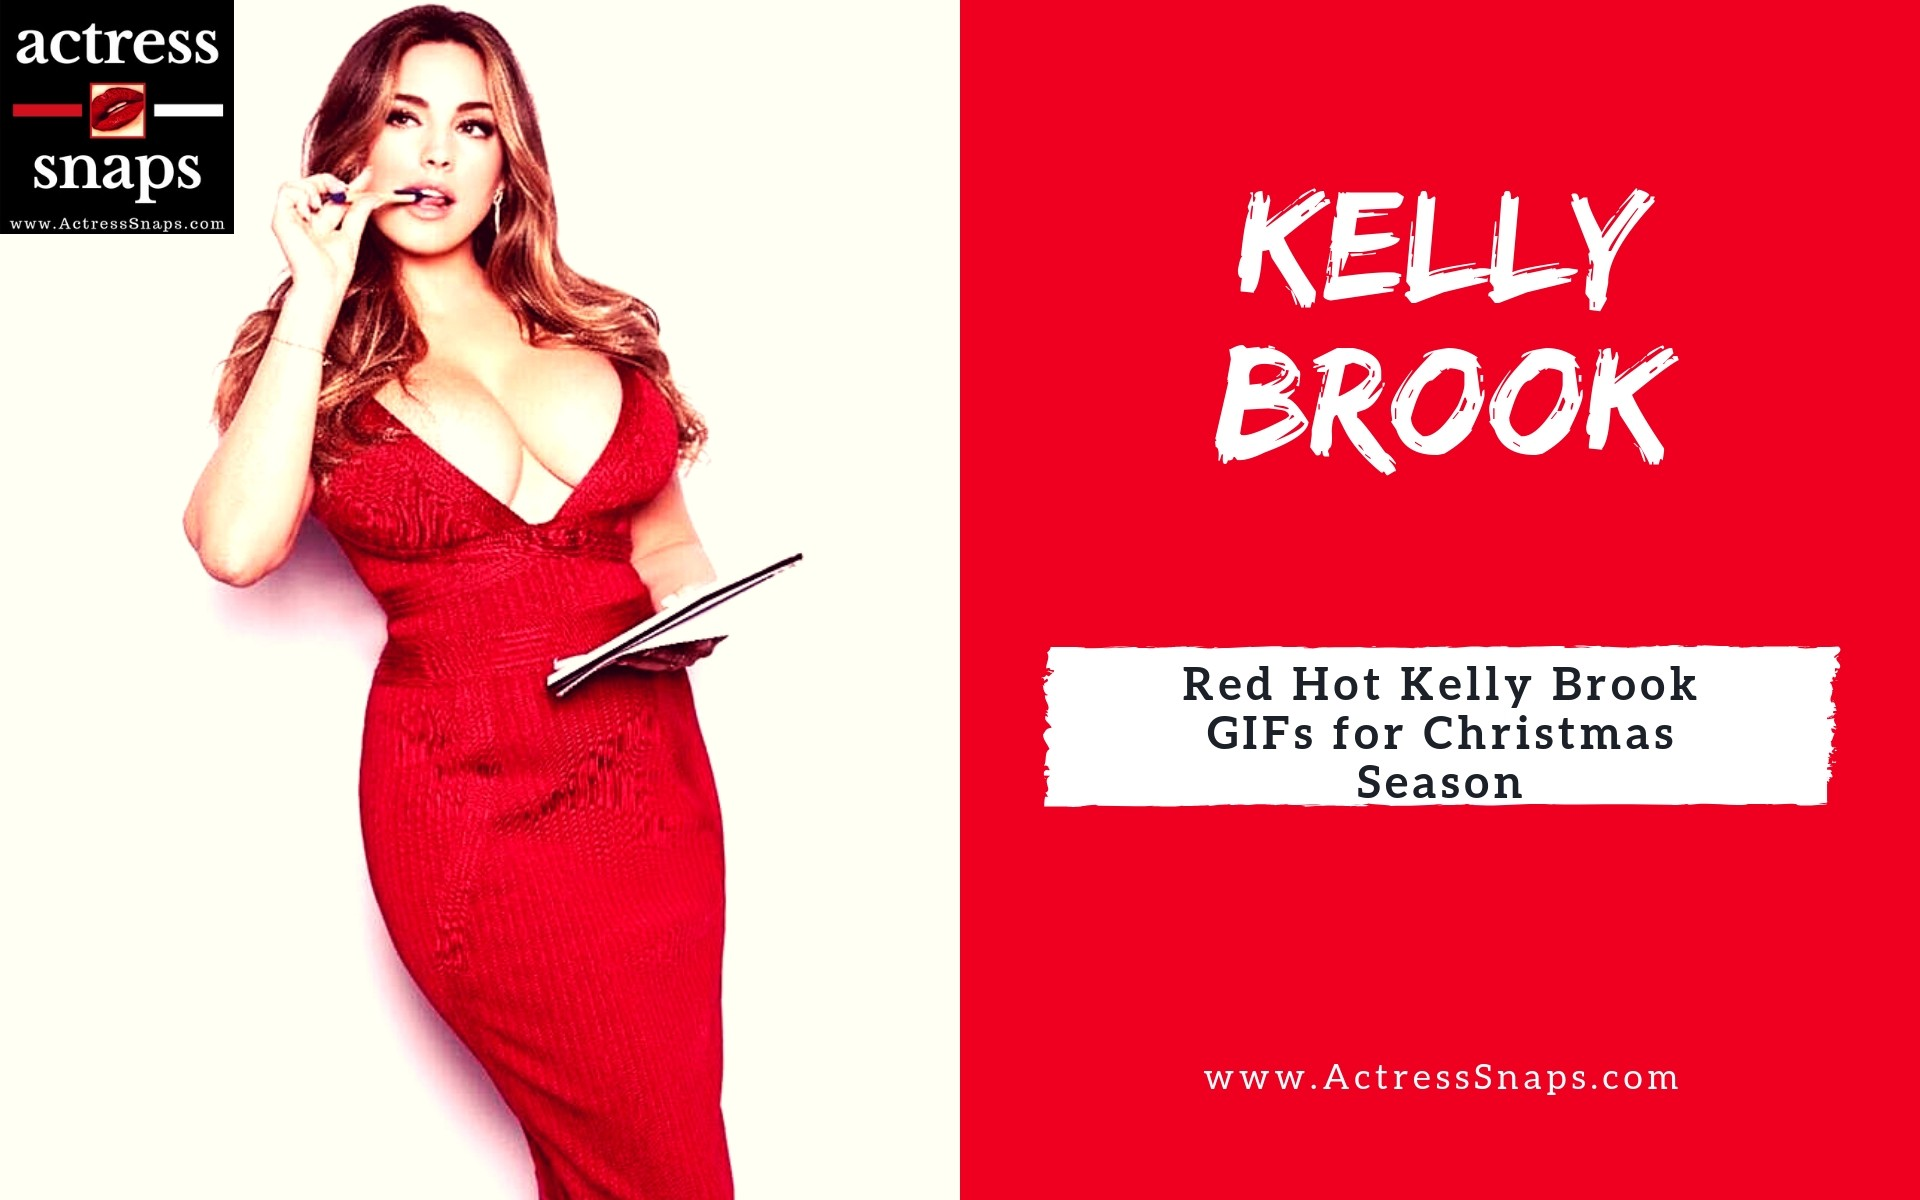 Kelly Brook - New Look Photoshoot - Sexy Actress Pictures | Hot Actress Pictures - ActressSnaps.com